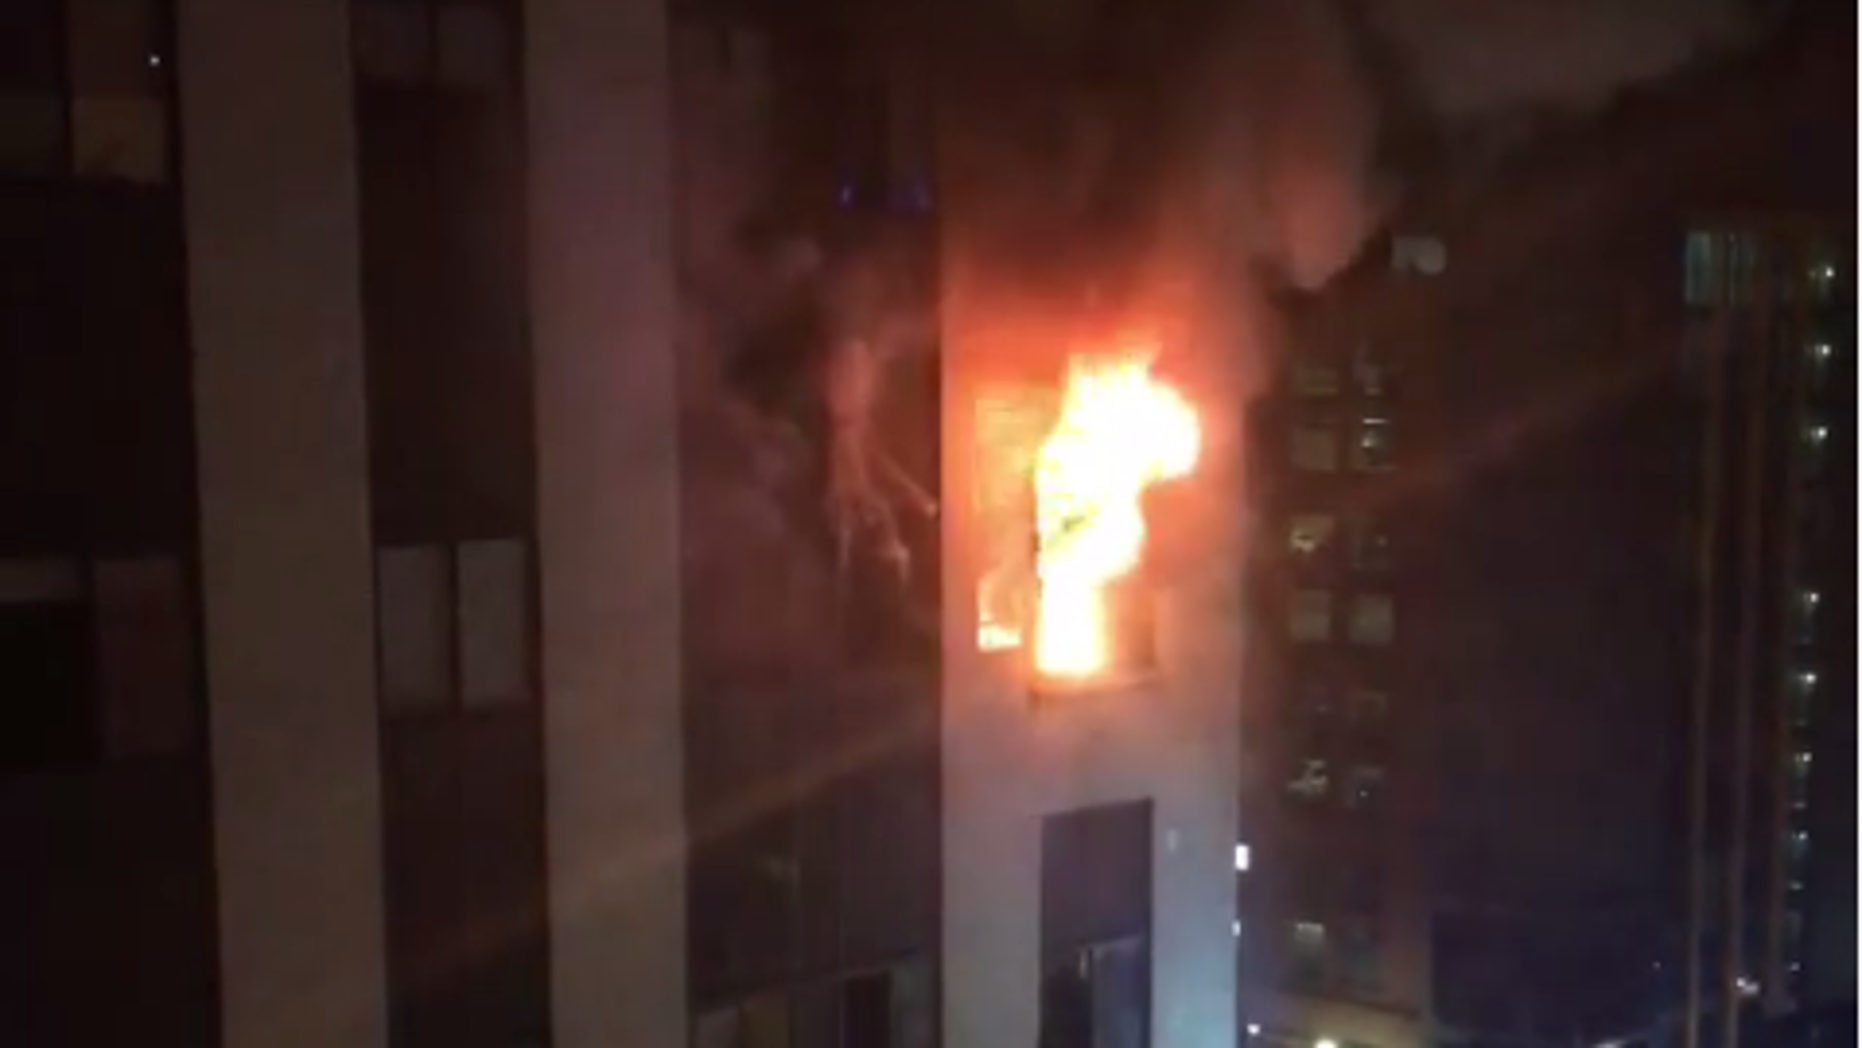 The Pittsburgh high-rise apartment fire killed at least one woman.